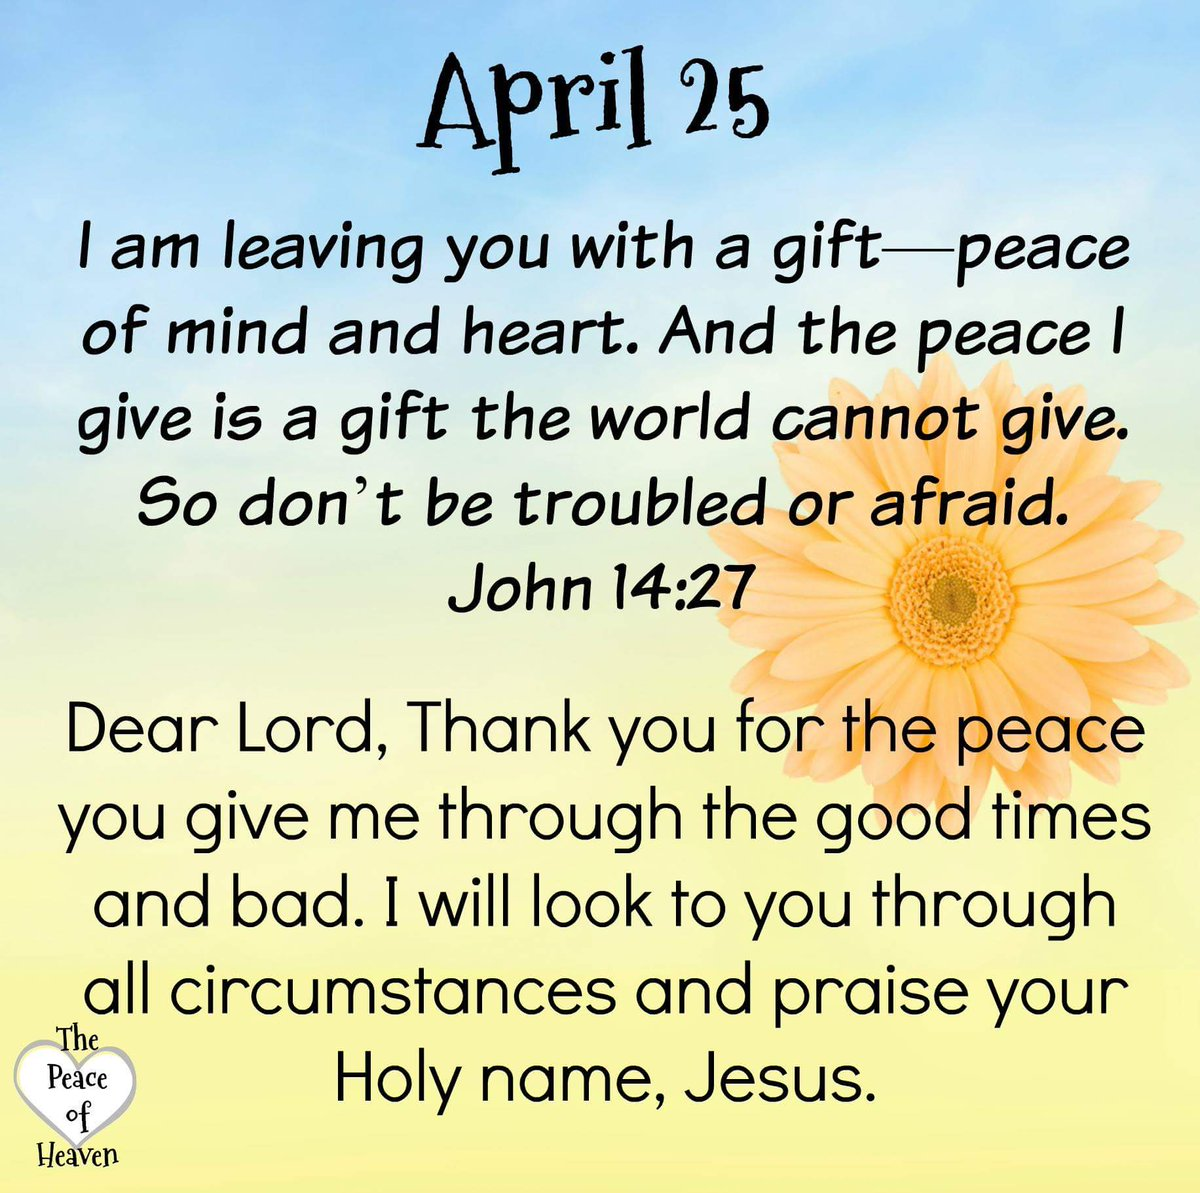 Good Morning Brothers/Sisters. I am leaving you with a gift--peace of mind and heart.And the peace I give is a gift the world cannot give. So don&#39;t be troubled or afraid.-John 14:27&quot;Lord U Bring  Peace To My.&quot; Have A Bless #Wednesday #JesusLovesYou  #WednesdayWisdom<br>http://pic.twitter.com/071RLughOw